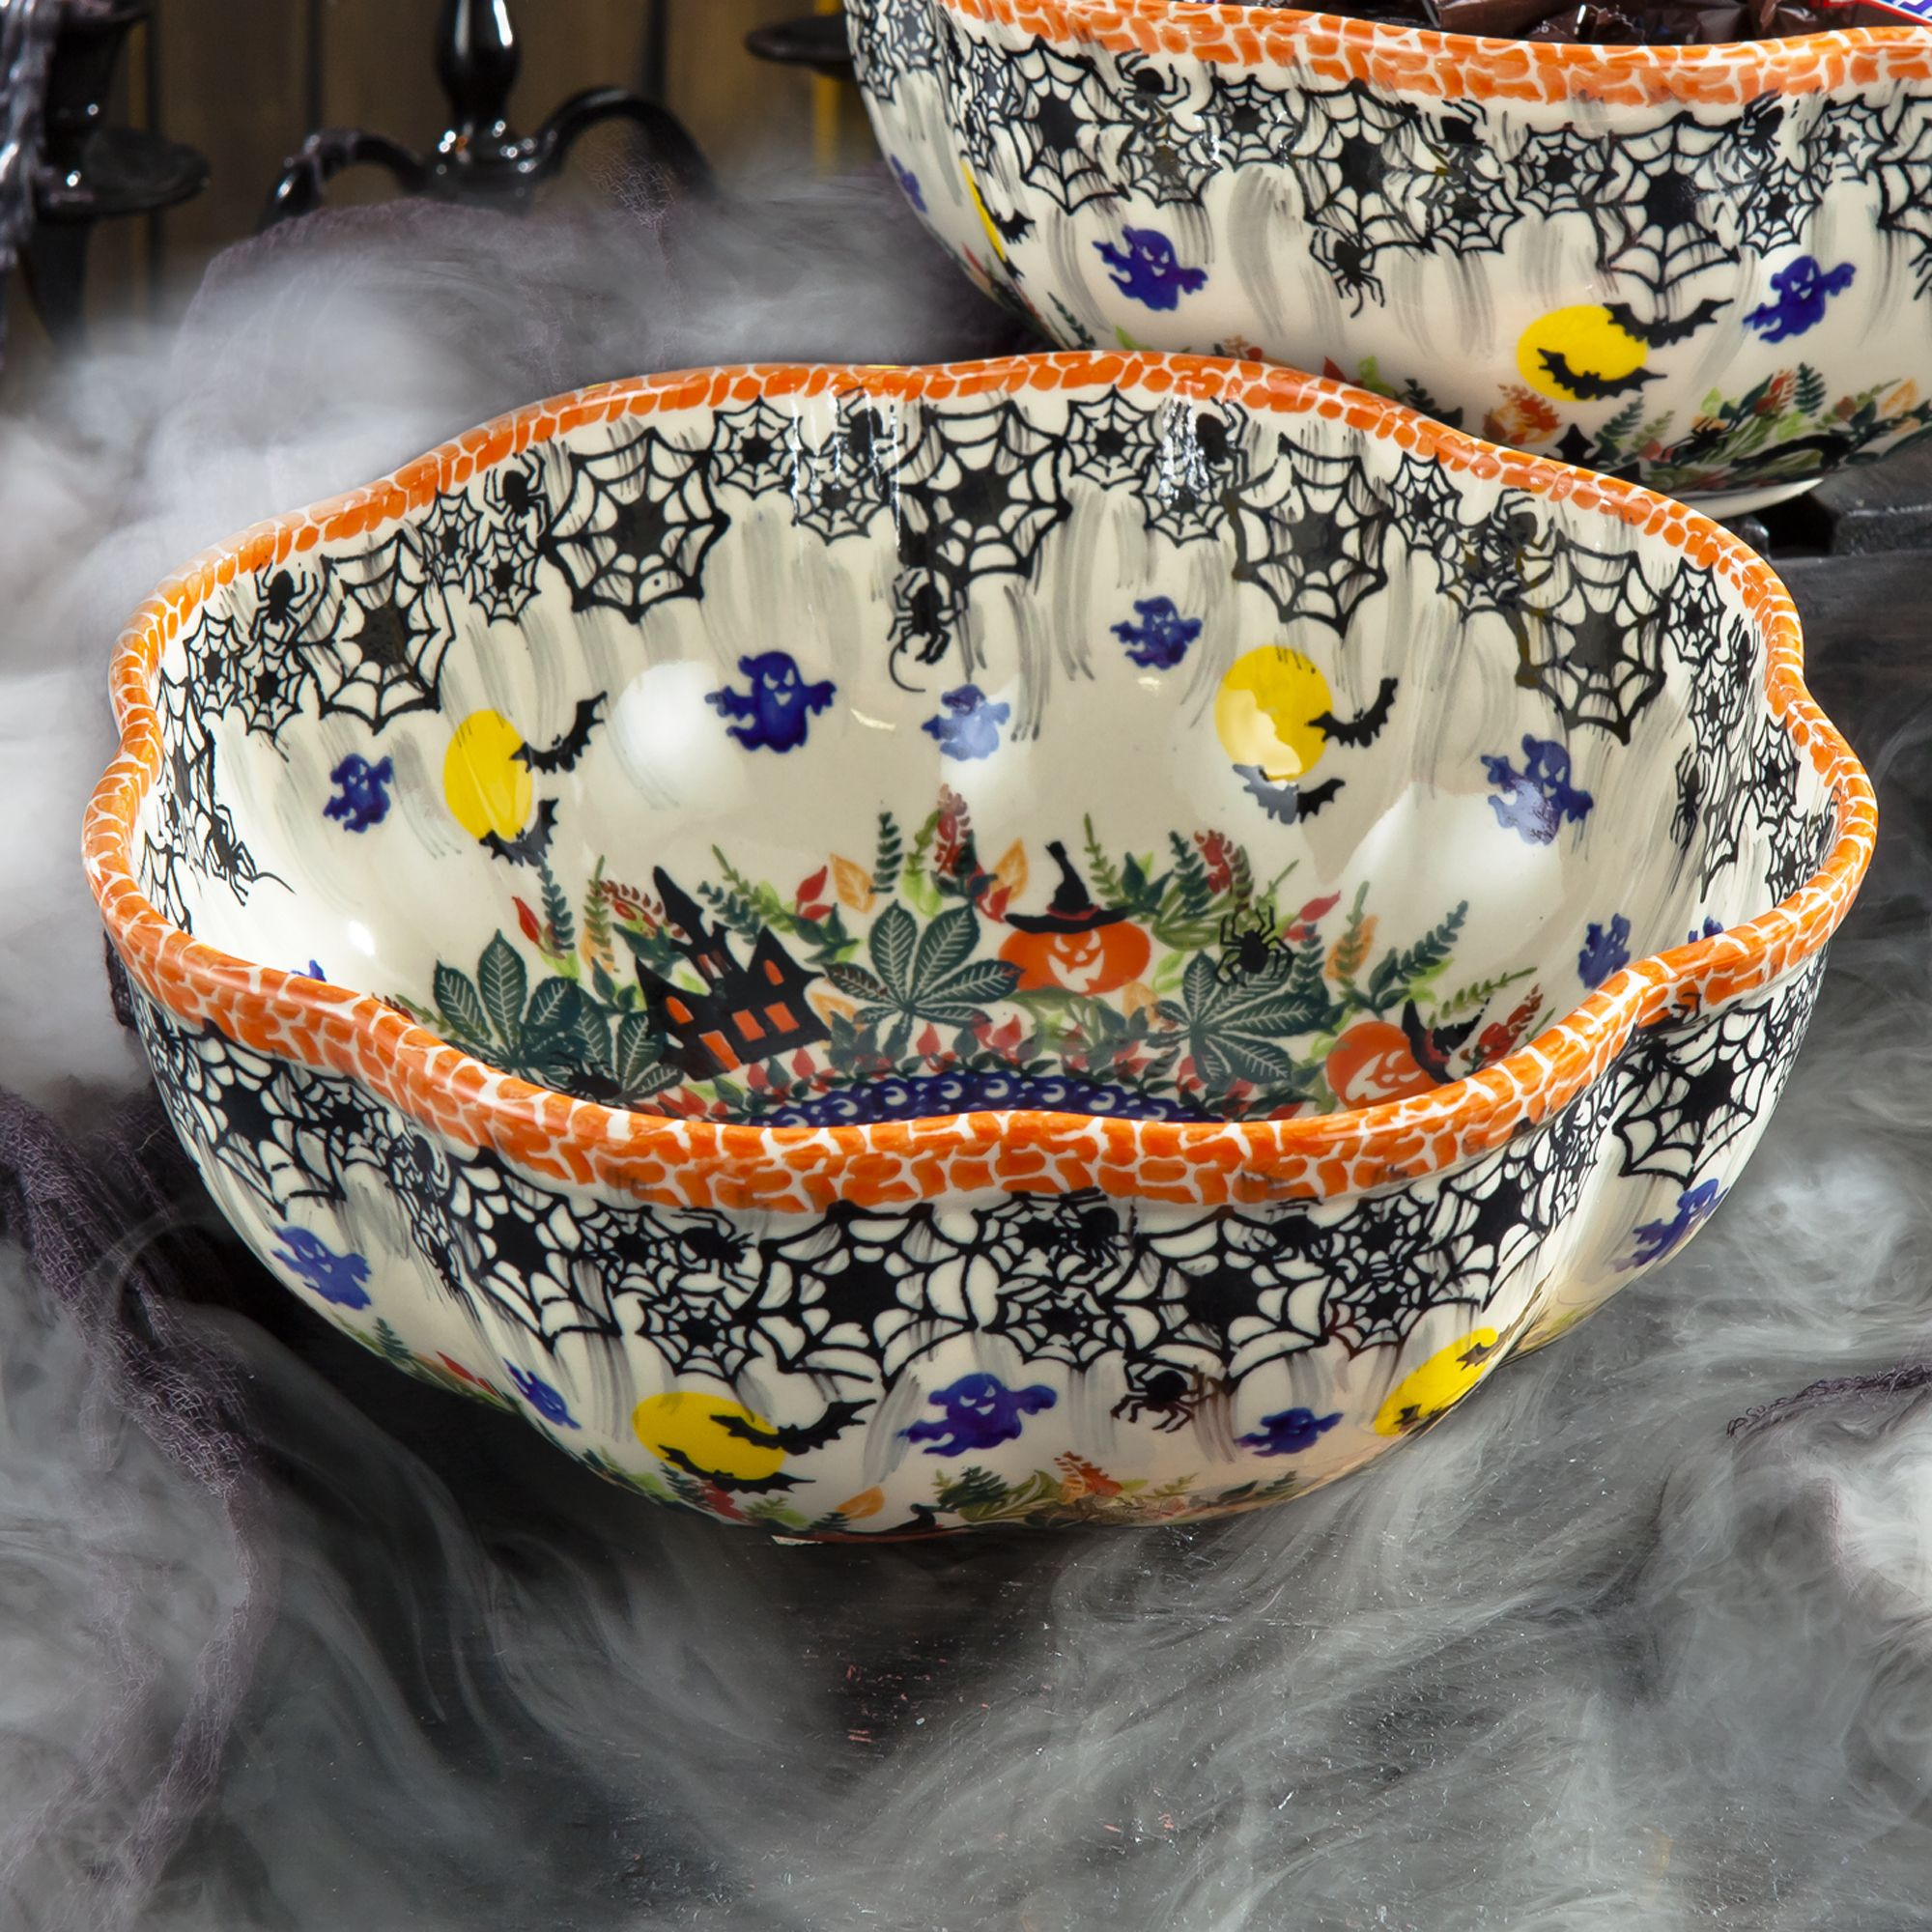 2018 Edition Polish Pottery Halloween Bowl in 2020